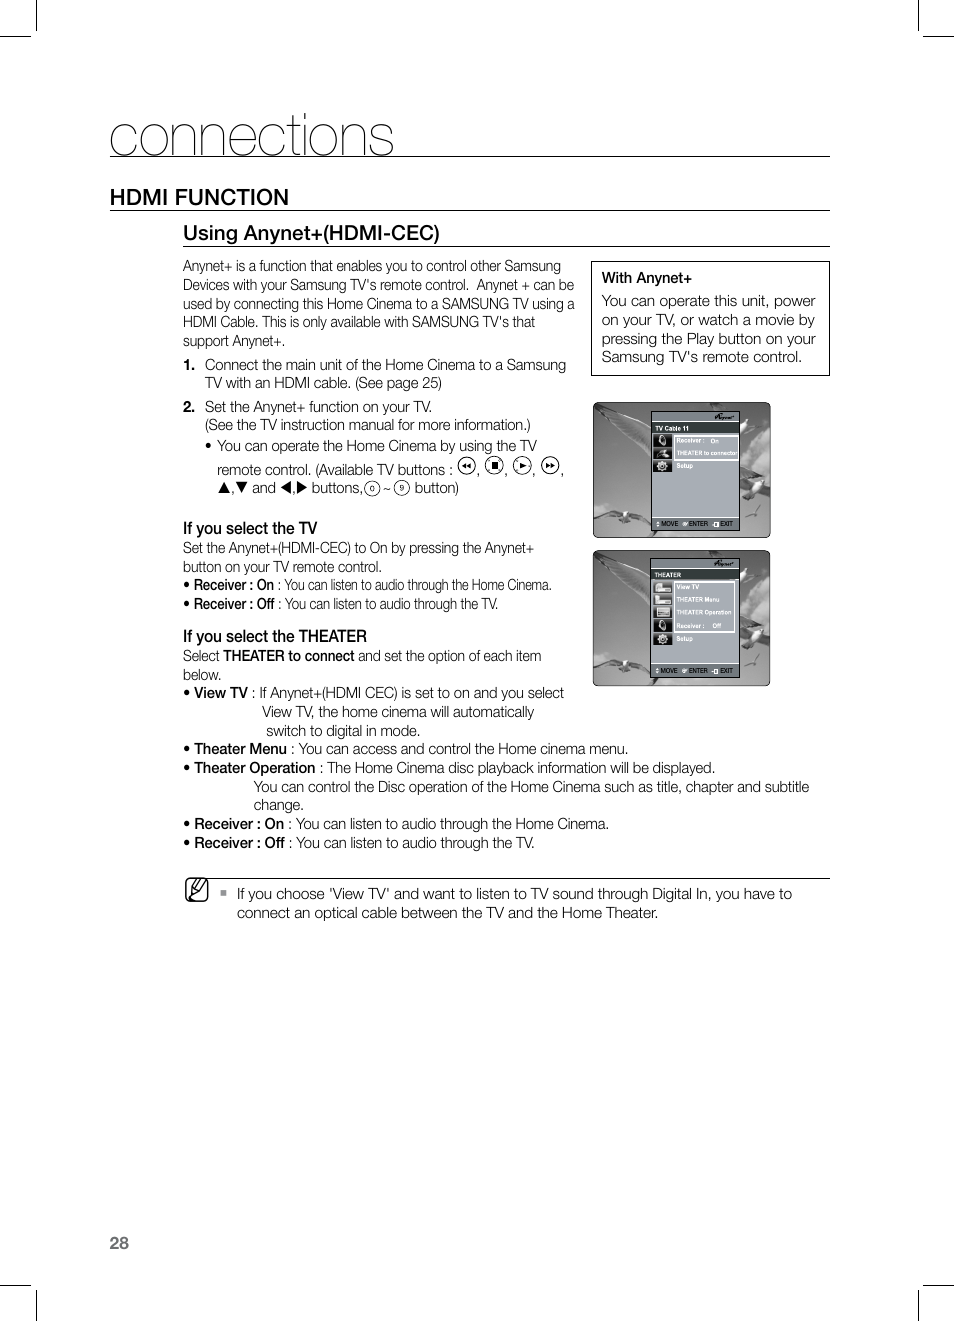 Connections, Hdmi function, Using anynet+(hdmi-cec